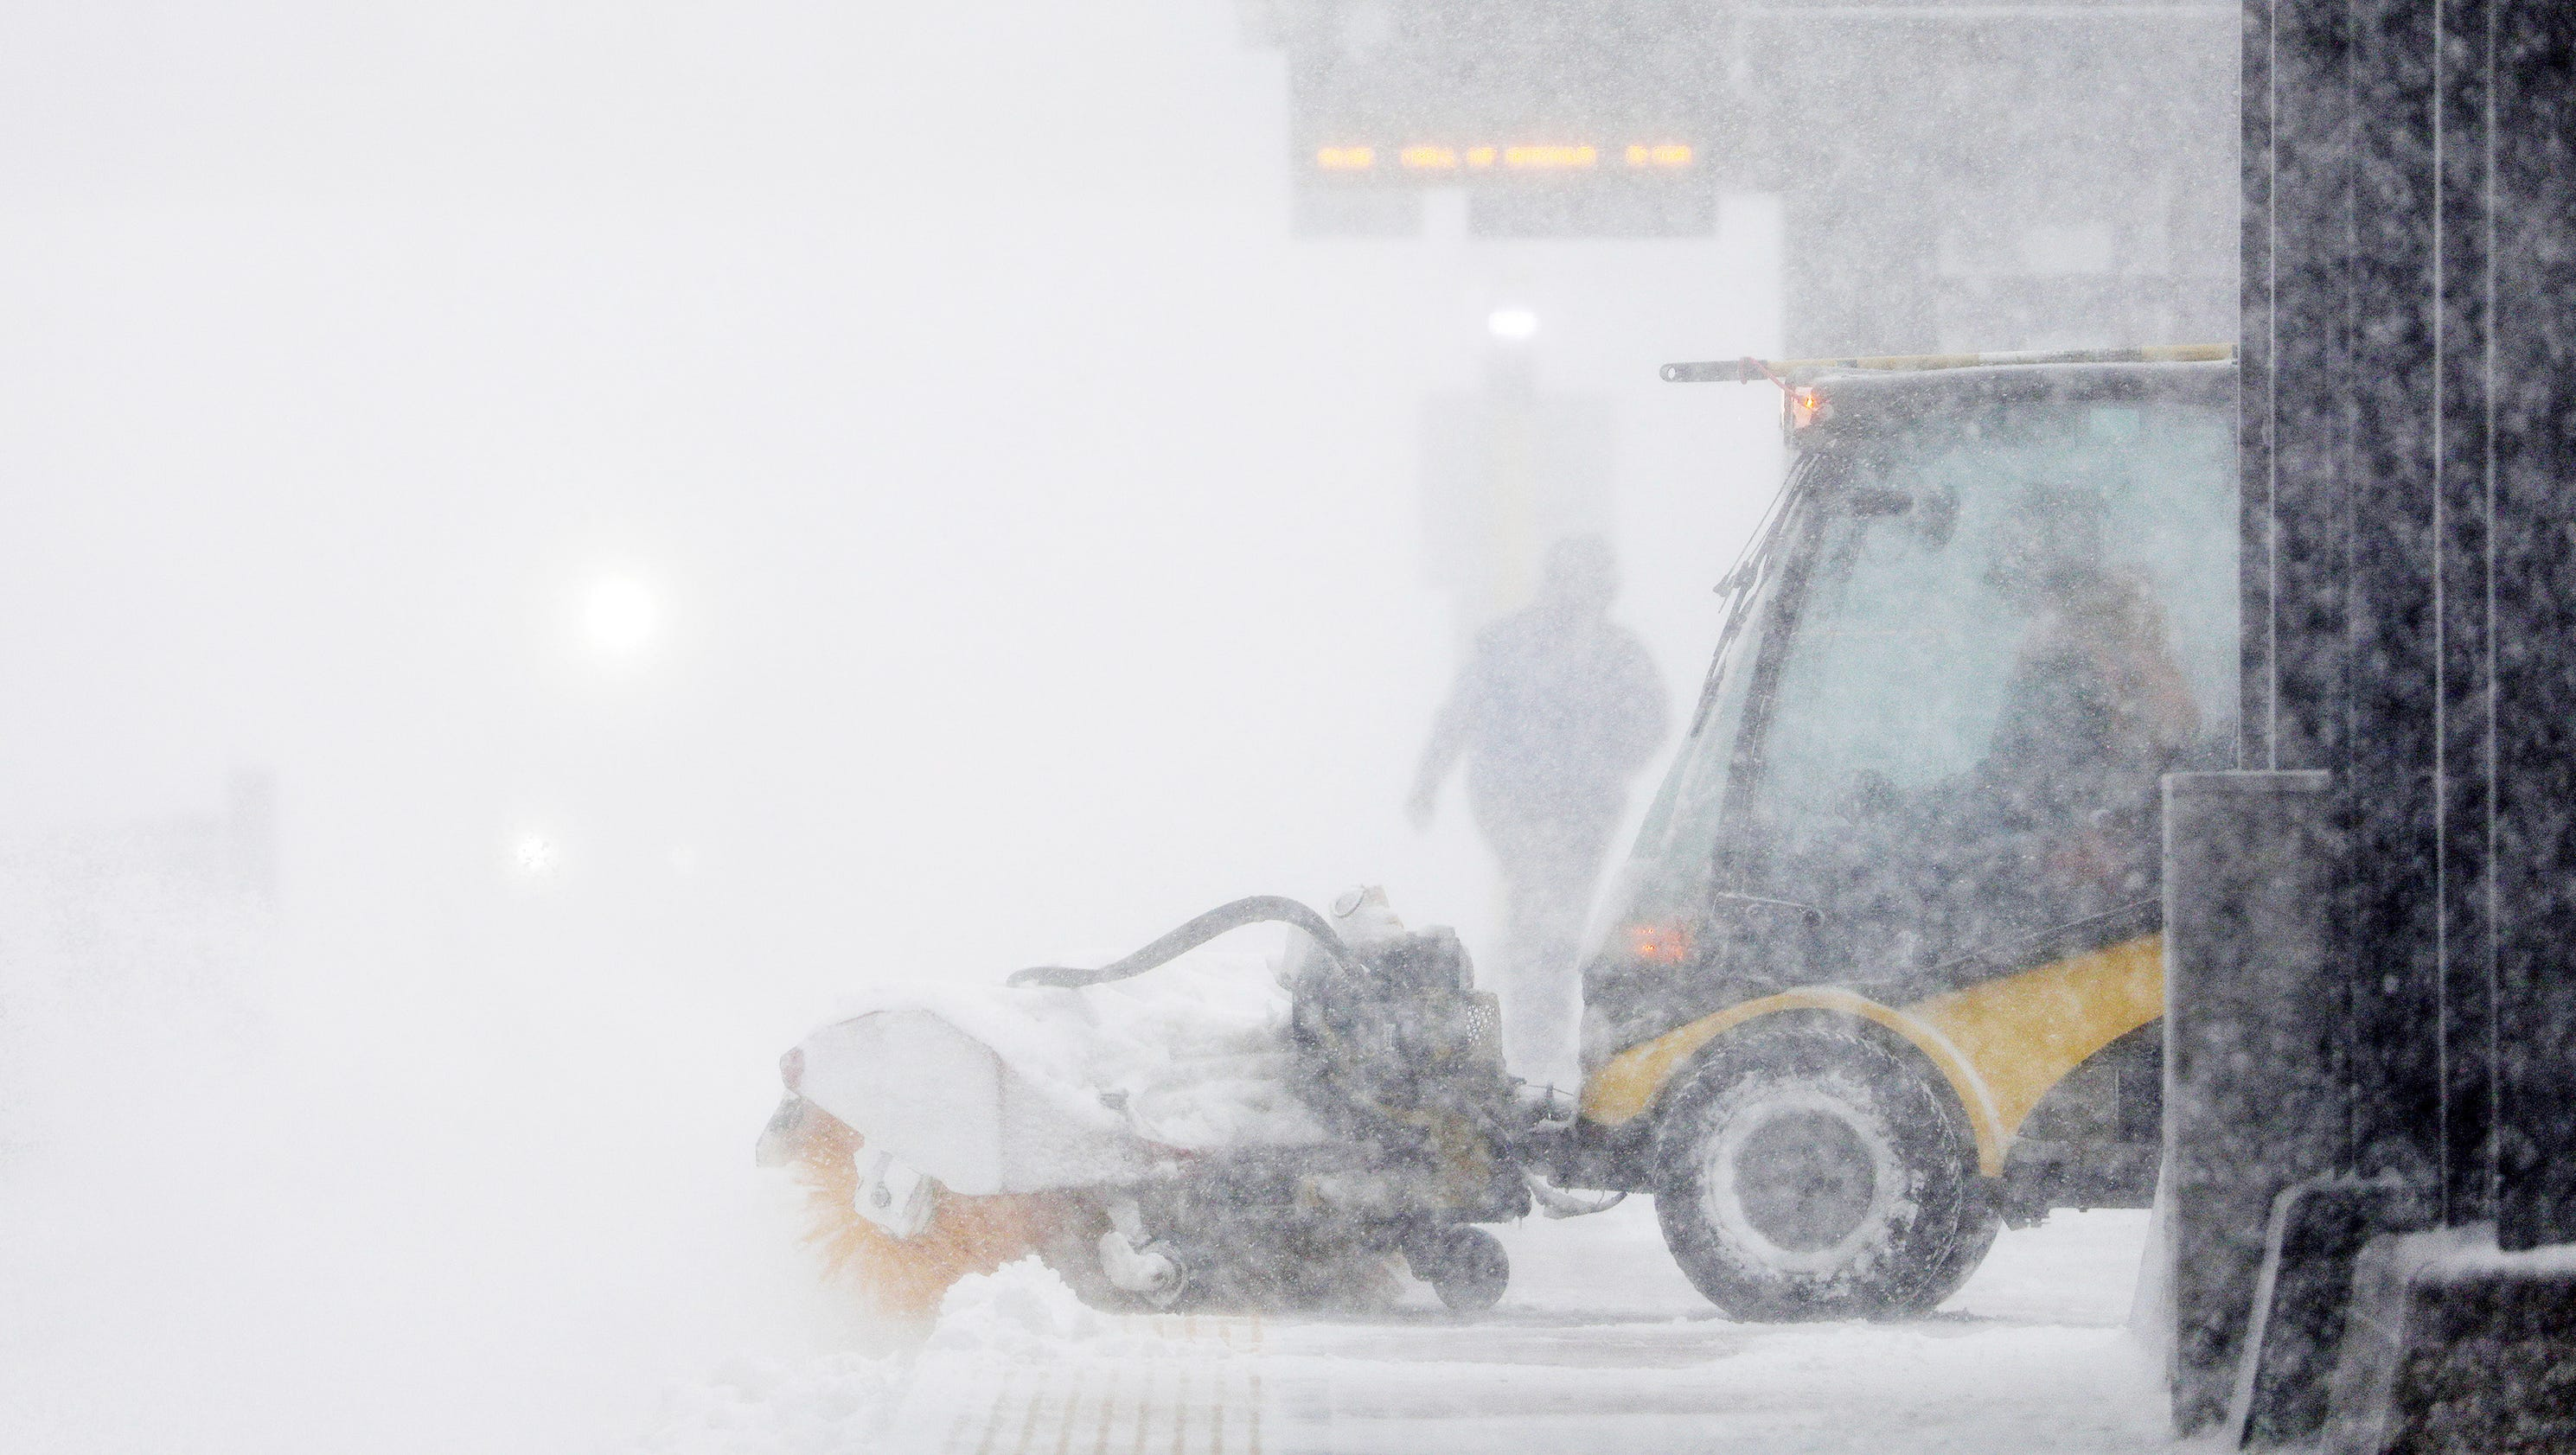 Winter storm system hitting two-thirds of the nation: Blizzards, tornadoes and fires